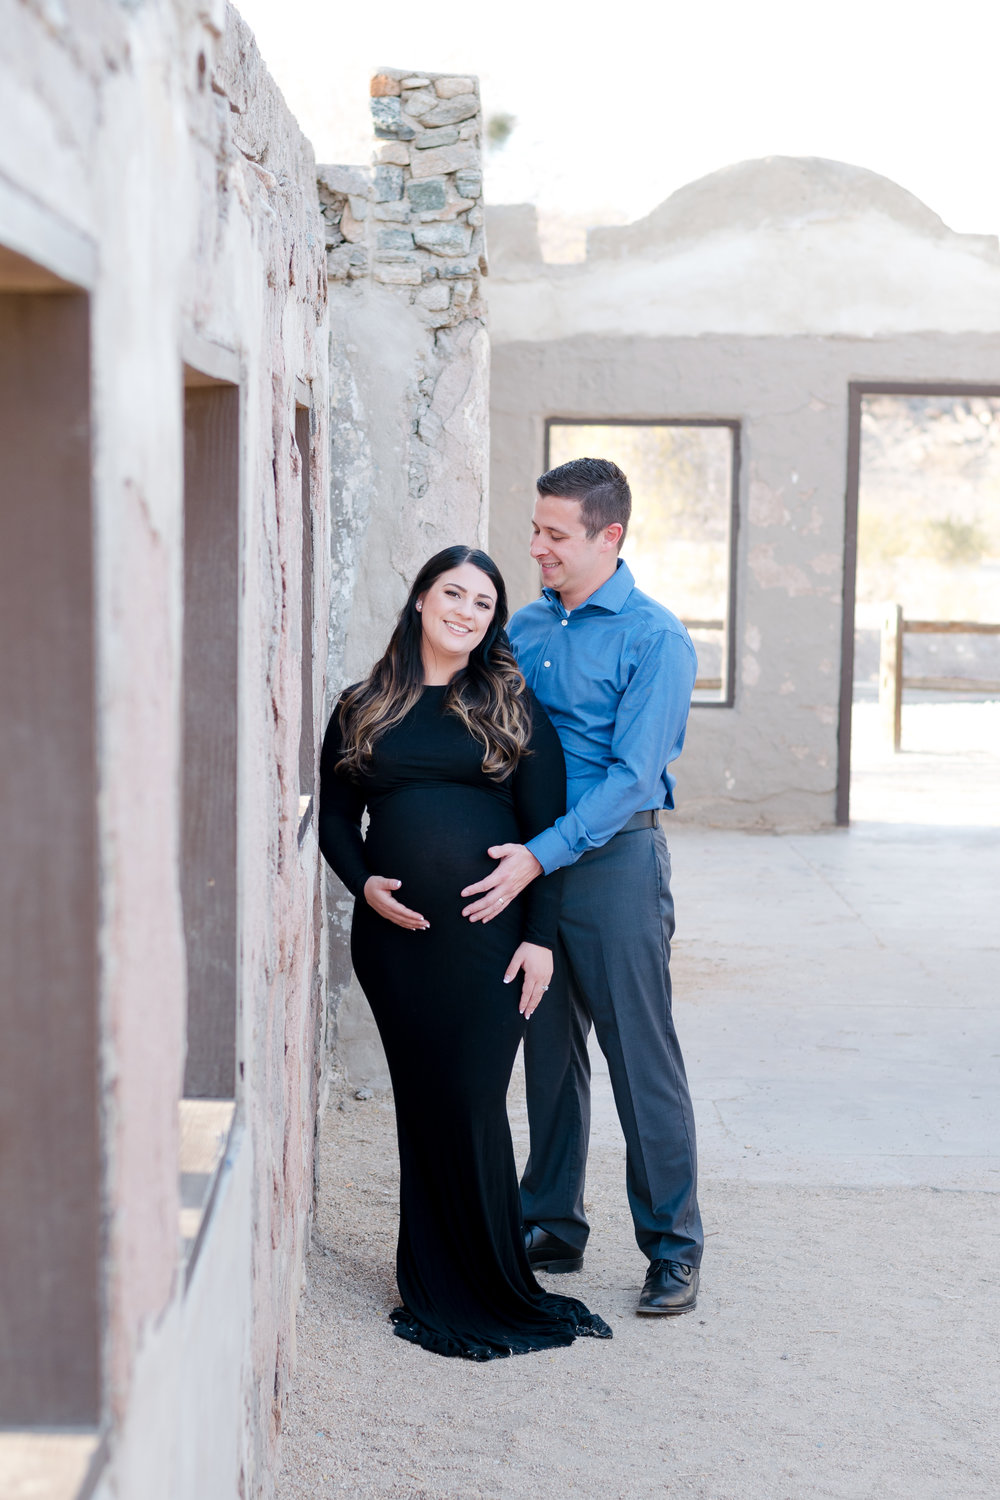 Maternity Photography - Peoria, Arizona | Lauren Iwen Photography